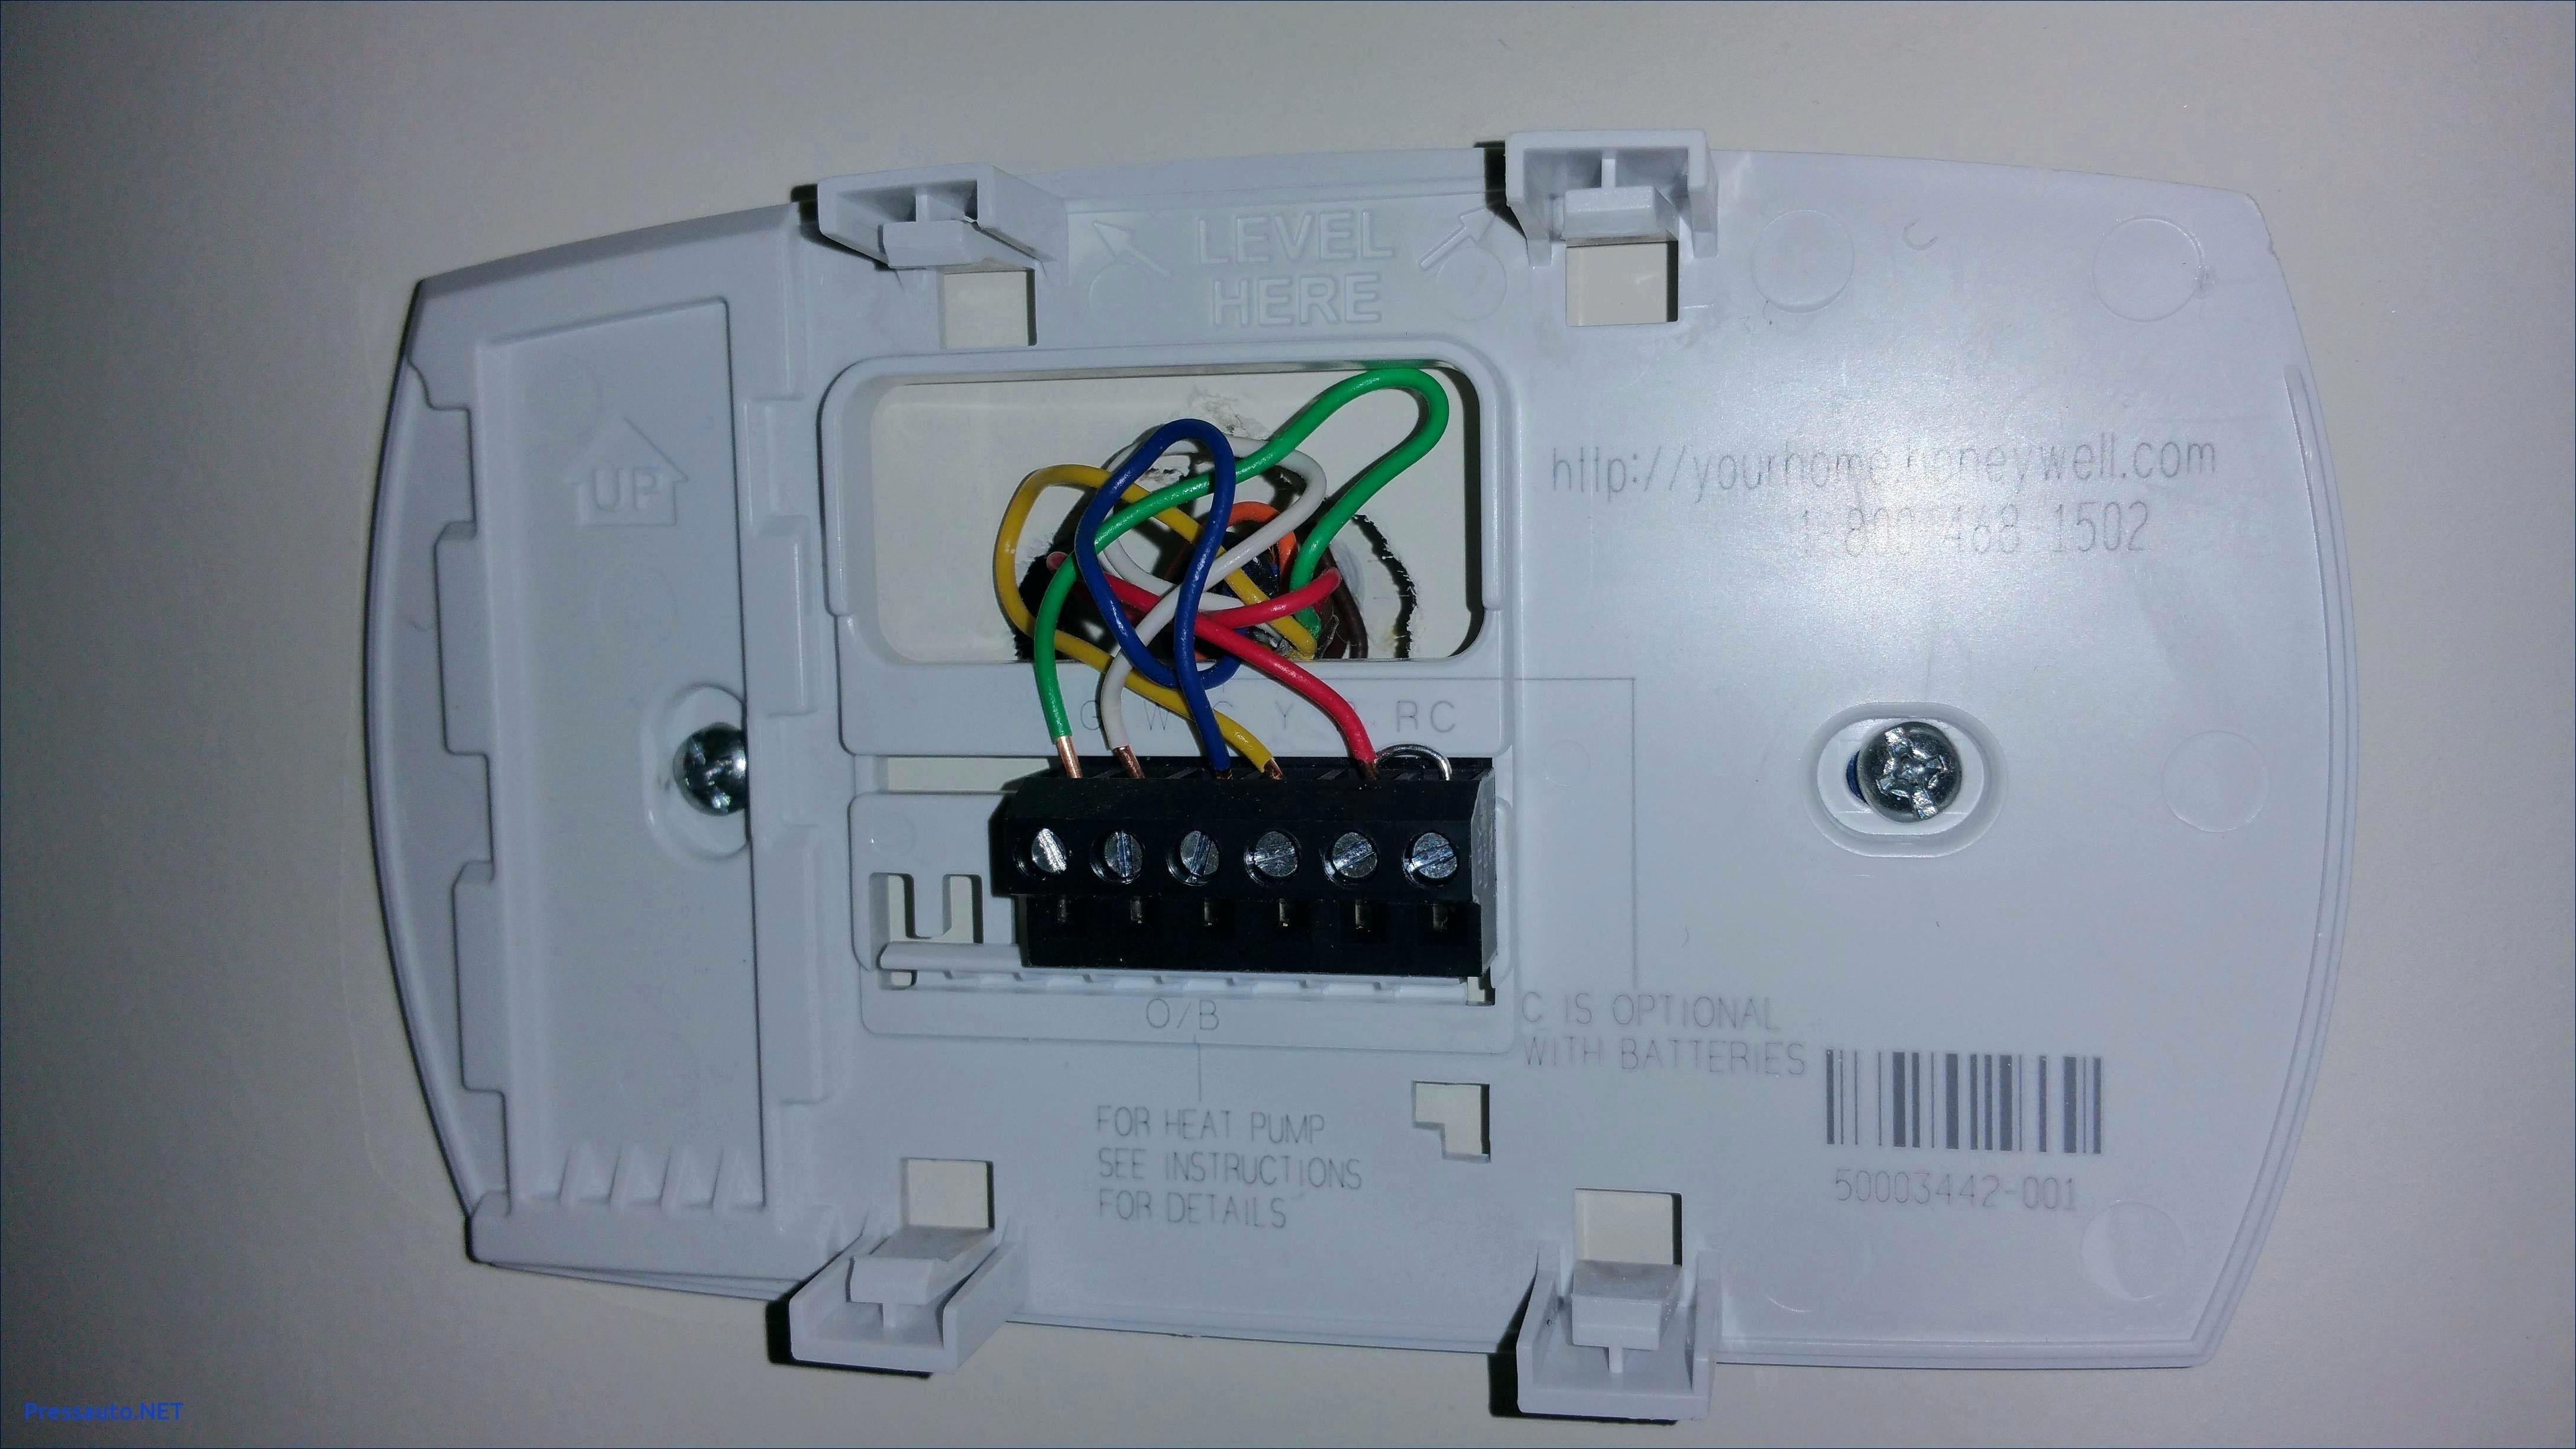 Dometic Single Zone Thermostat Wiring Diagram | Wiring Diagram - Dometic Thermostat Wiring Diagram